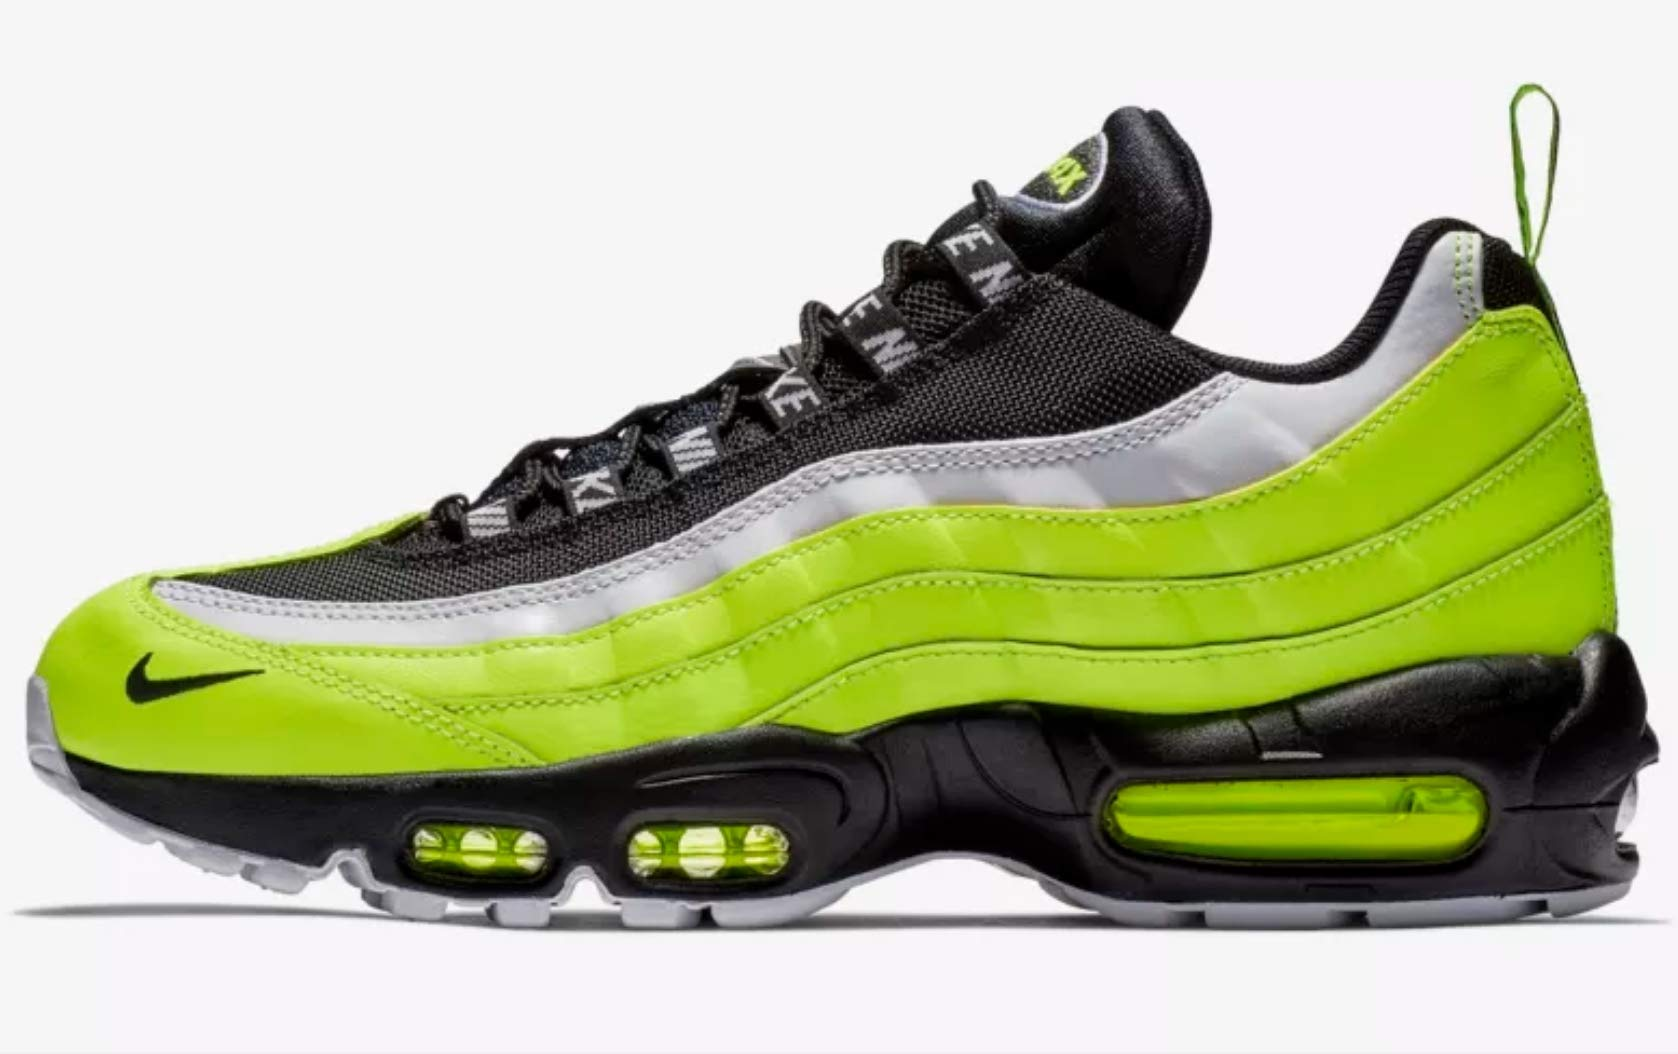 reputable site 08659 eb8c6 Galleon - NIKE Air Max 95 PRM Reverse Mens Style   538416-701 Size   9 M US